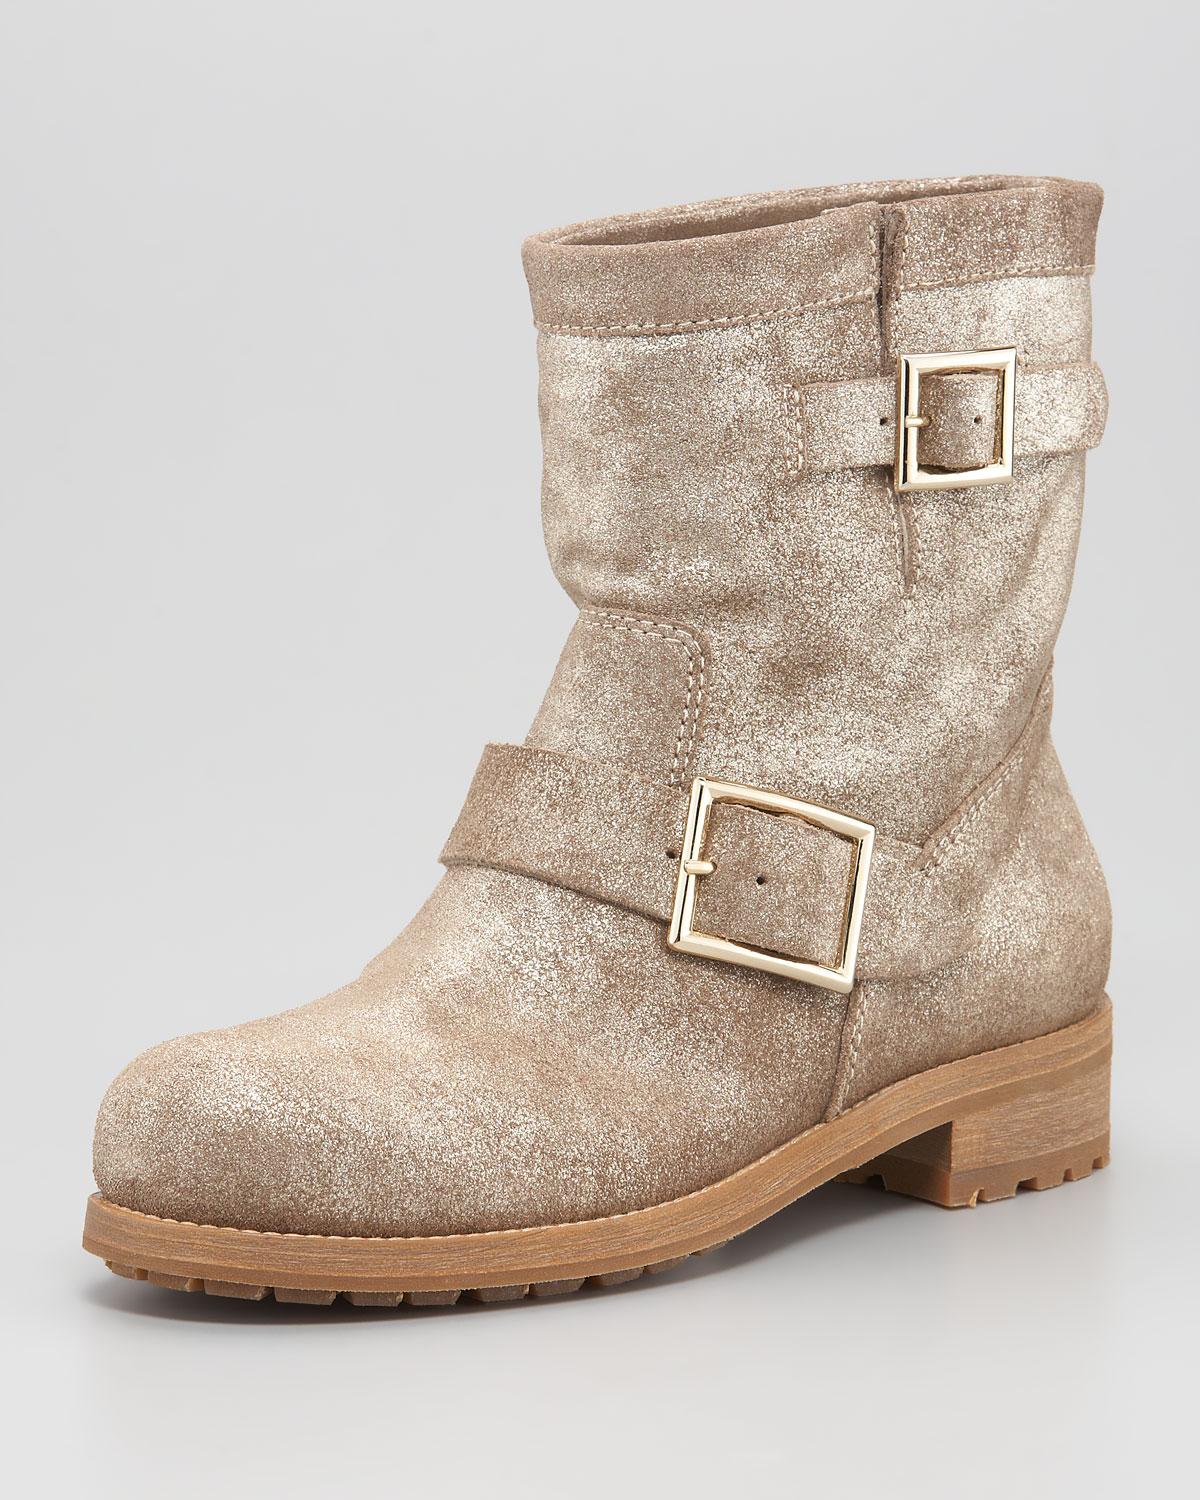 Jimmy Choo suede rhinestone buckle boot clearance nicekicks low shipping sale online clearance cheap price awXEkh